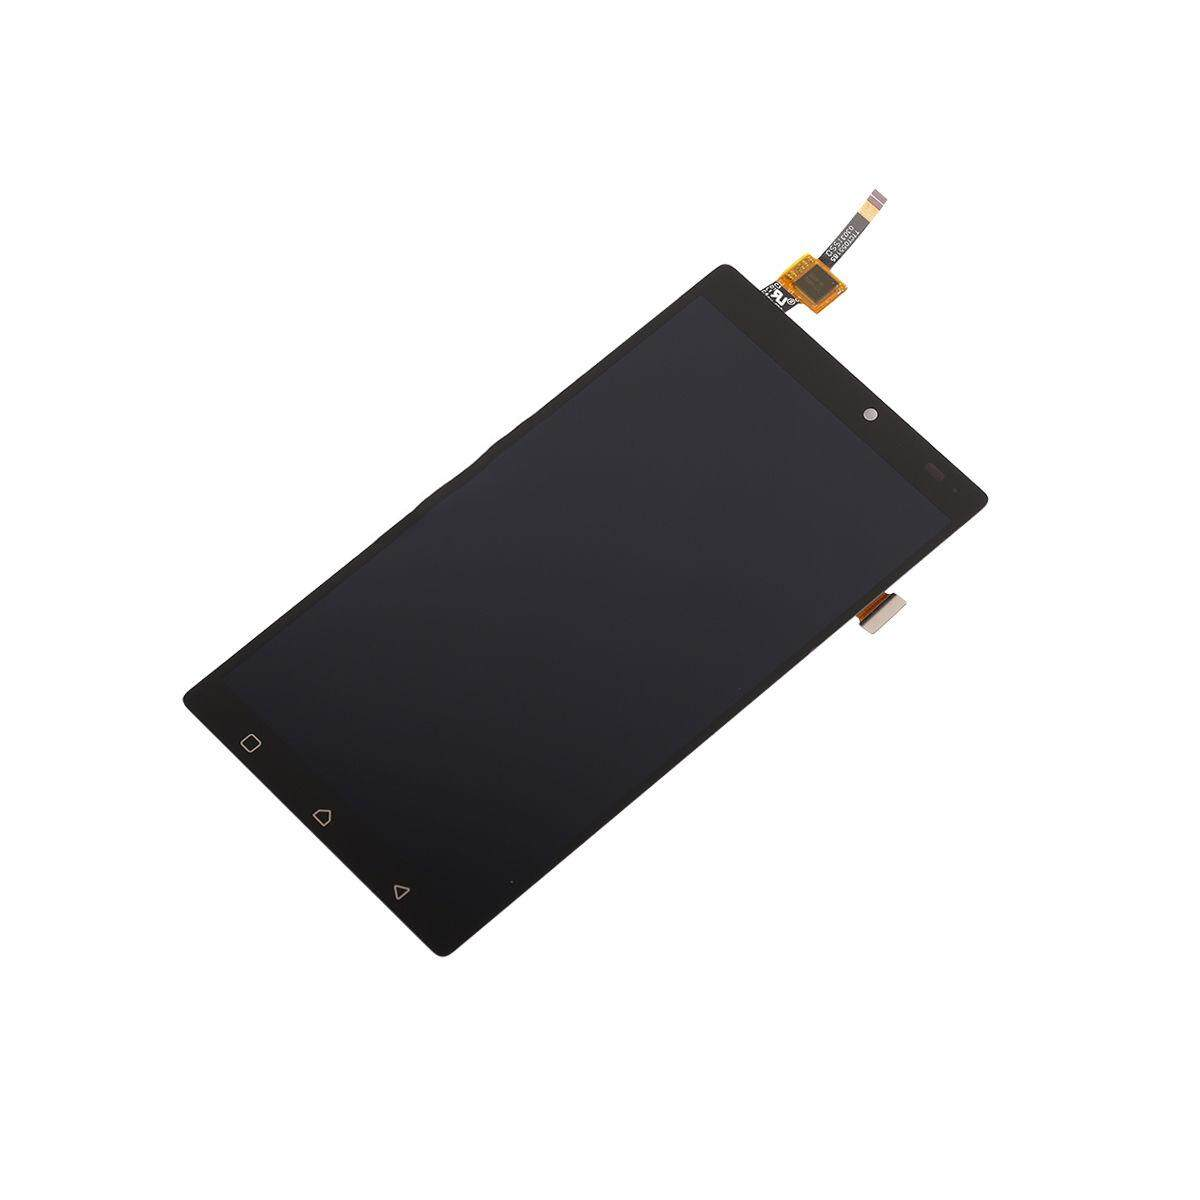 For Lenovo K4 note A7010 A7010a48 5.5'' LCD Display Touch Screen Digitizer Part